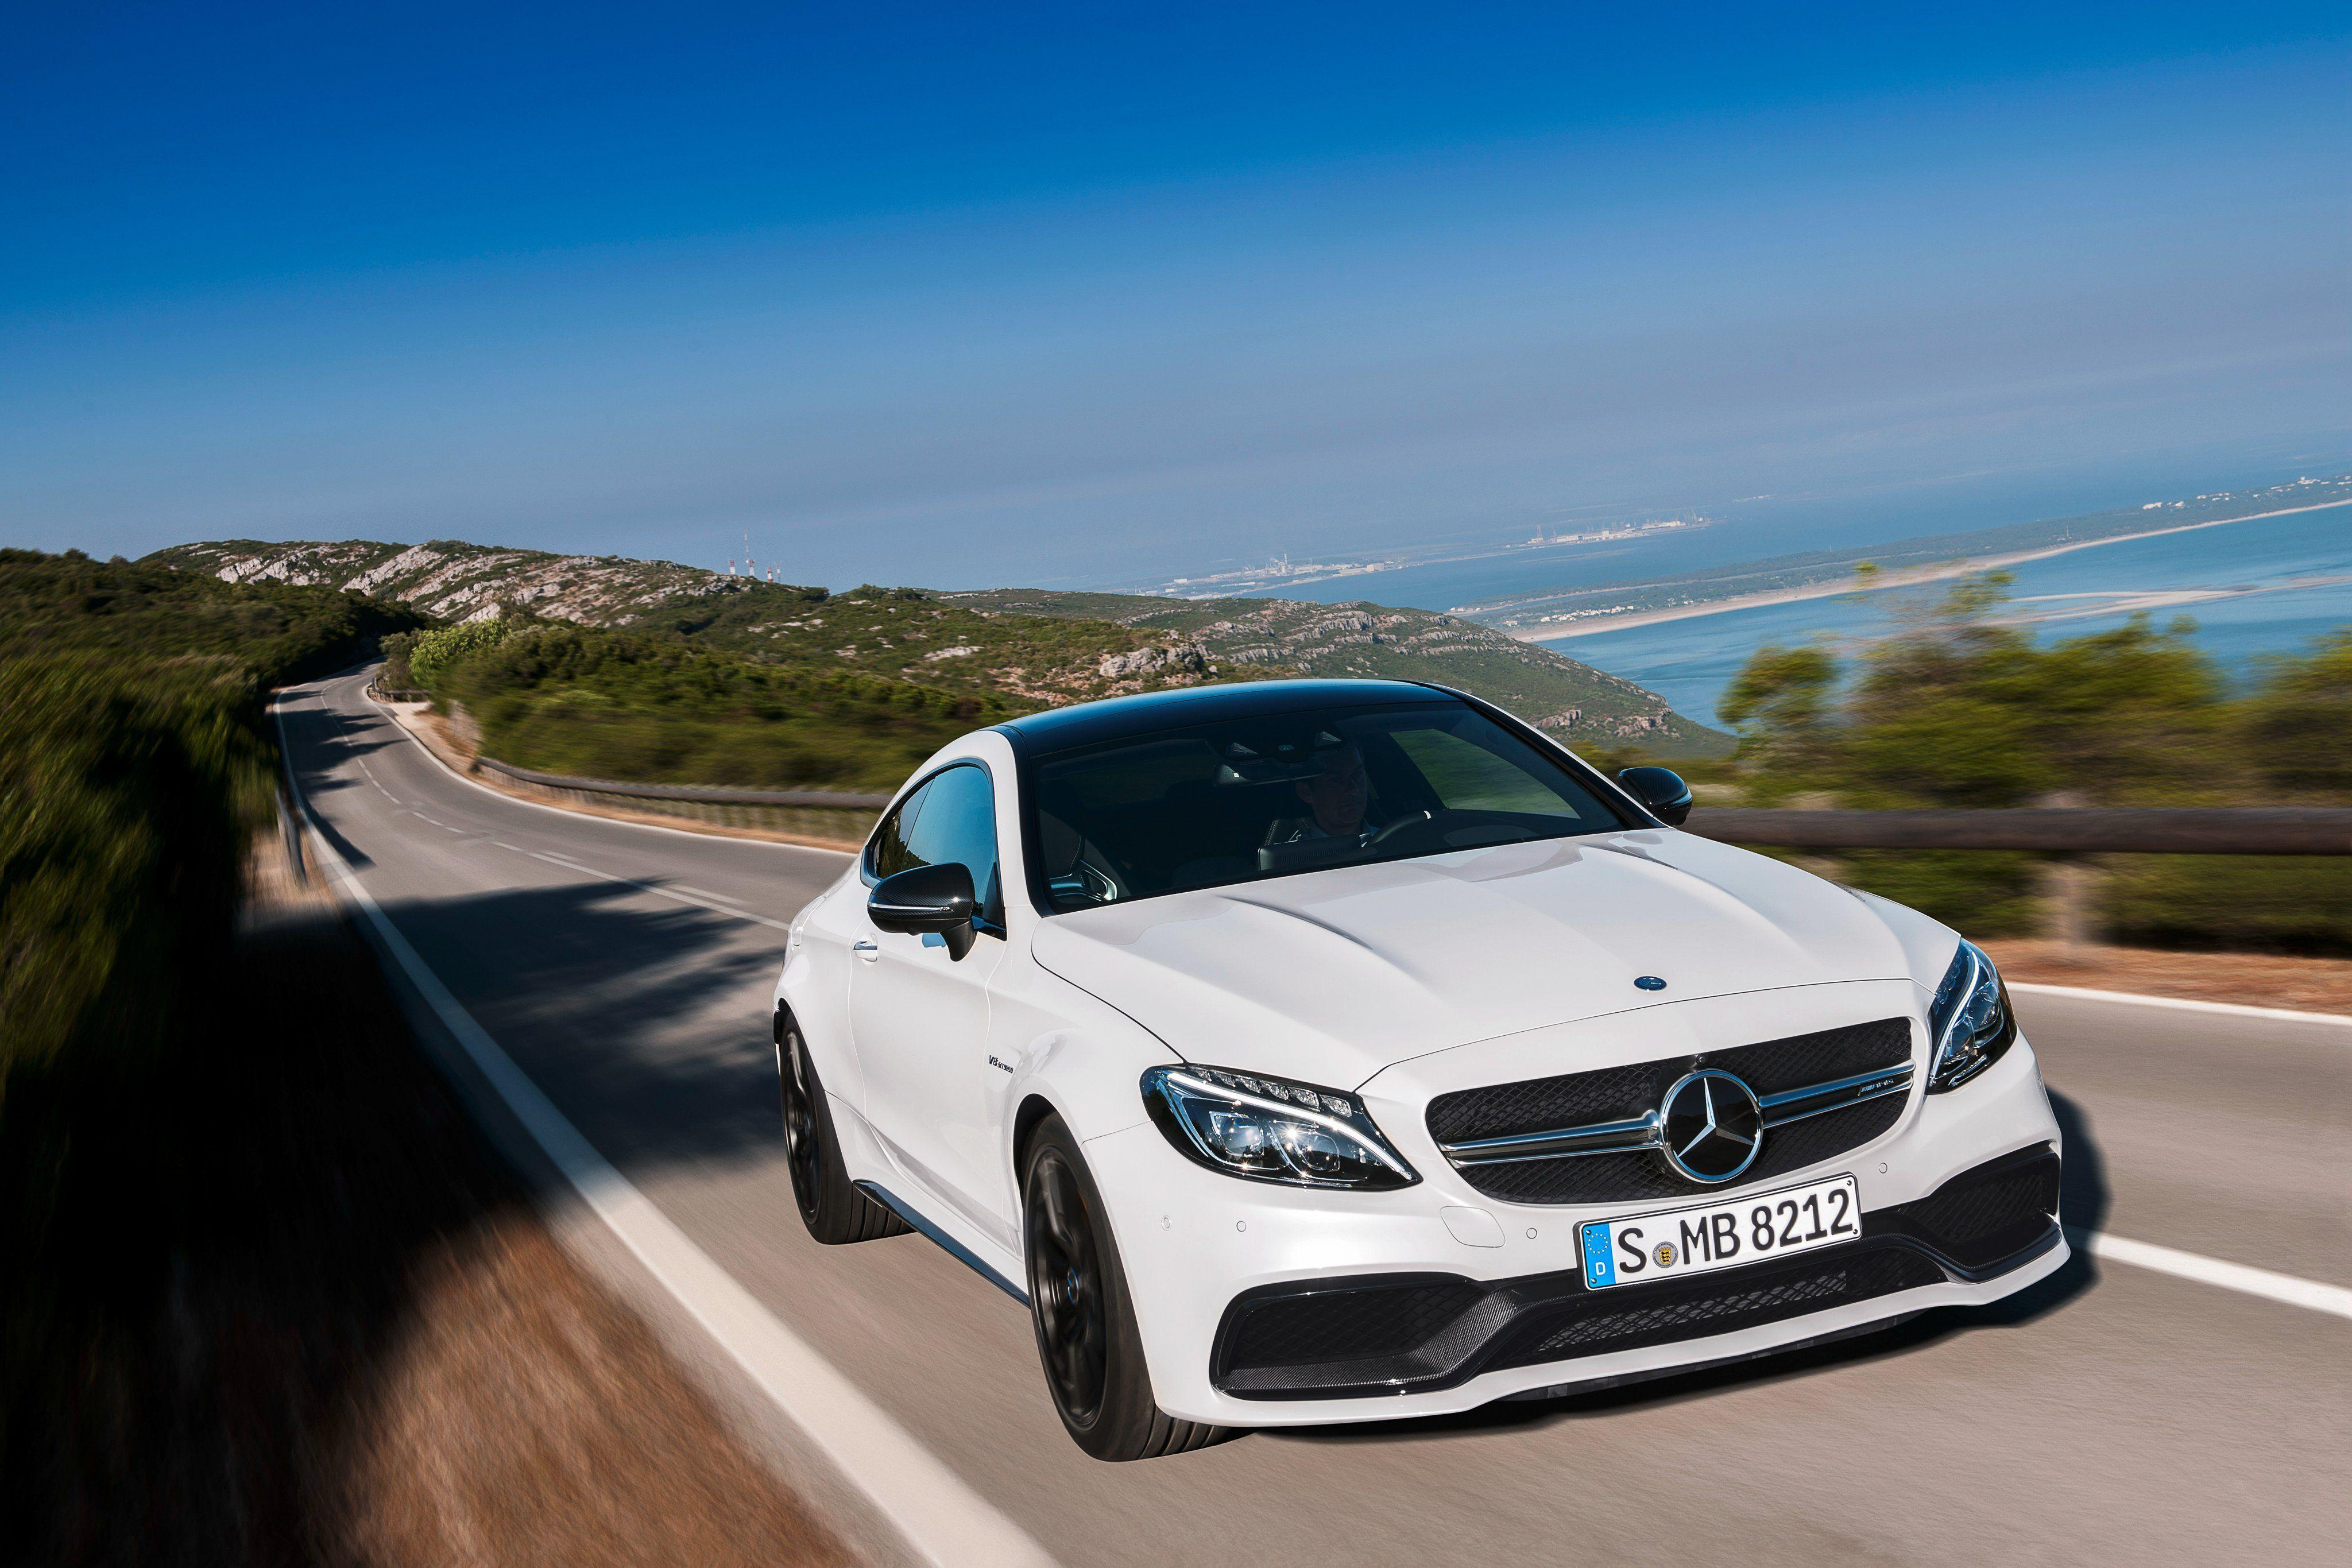 Mercedes Amg C63 S Coupe Wallpapers Wallpaper Cave